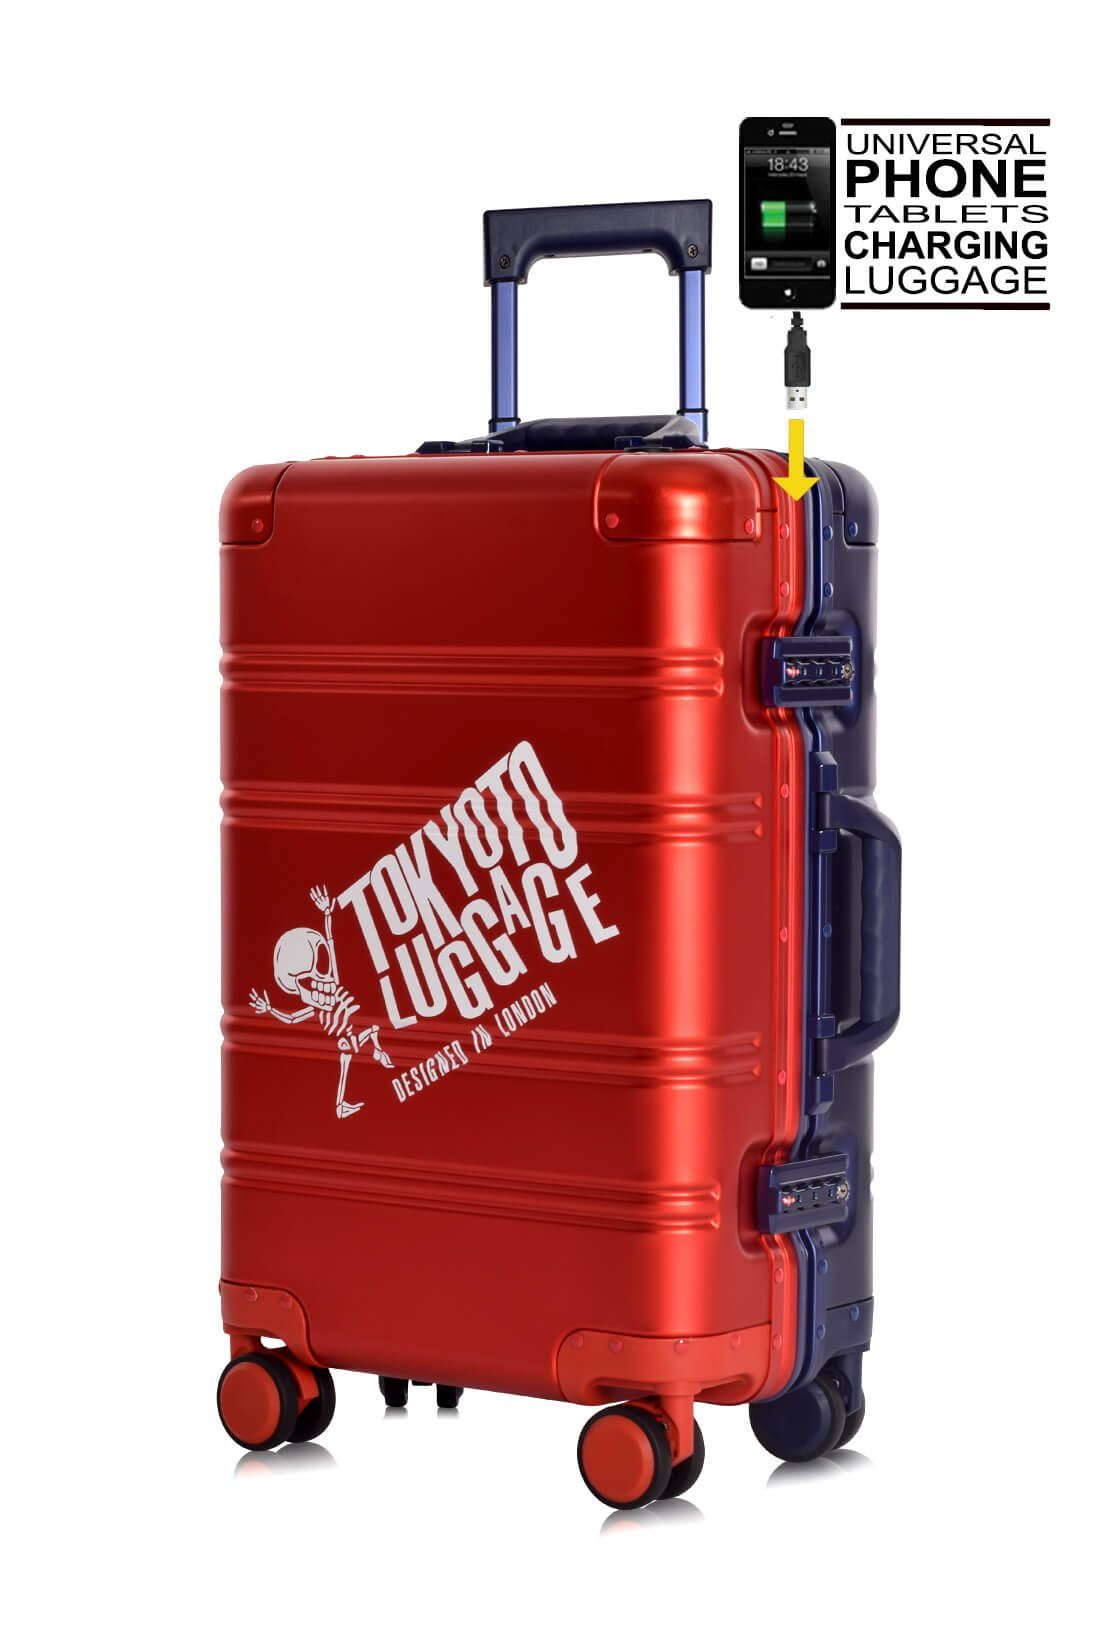 Valise Aluminium Online Cabine Trolley Avec Chargeur Powerbank TOKYOTO LUGGAGE Modelle RED BLUE LOGO 4